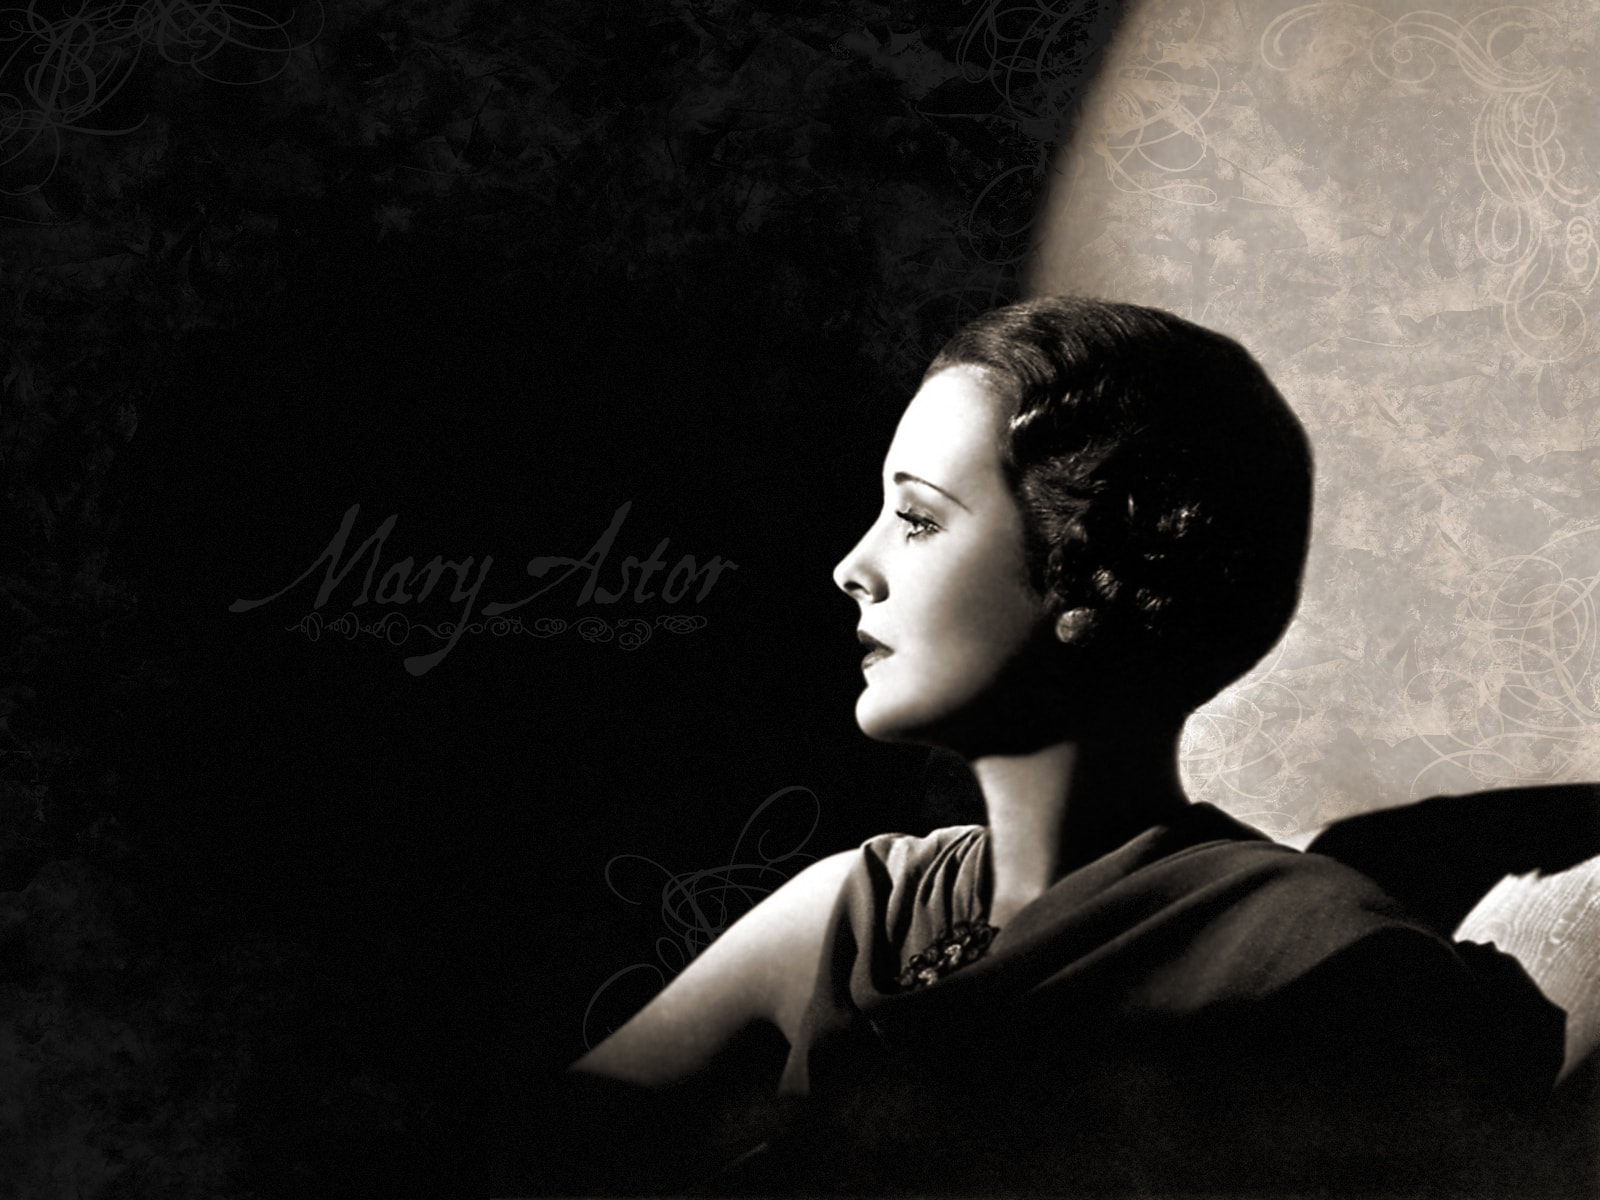 Mary Astor Desktop wallpaper